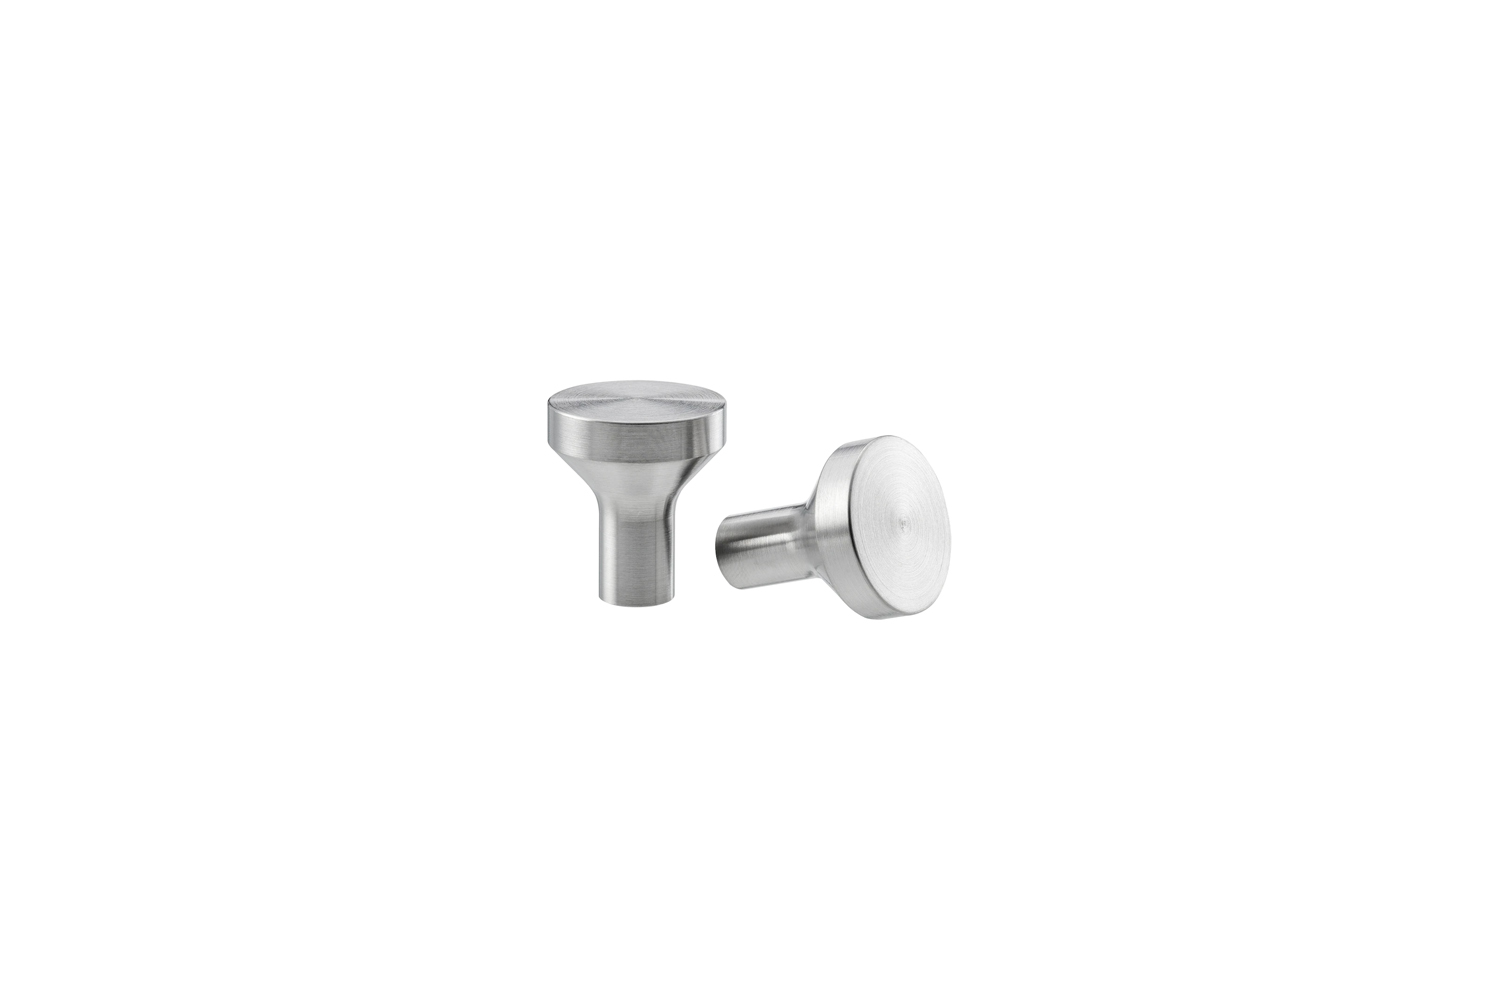 the affordable ikea bagganas knob in stainless steel is \$5 for a pack of \2. 14